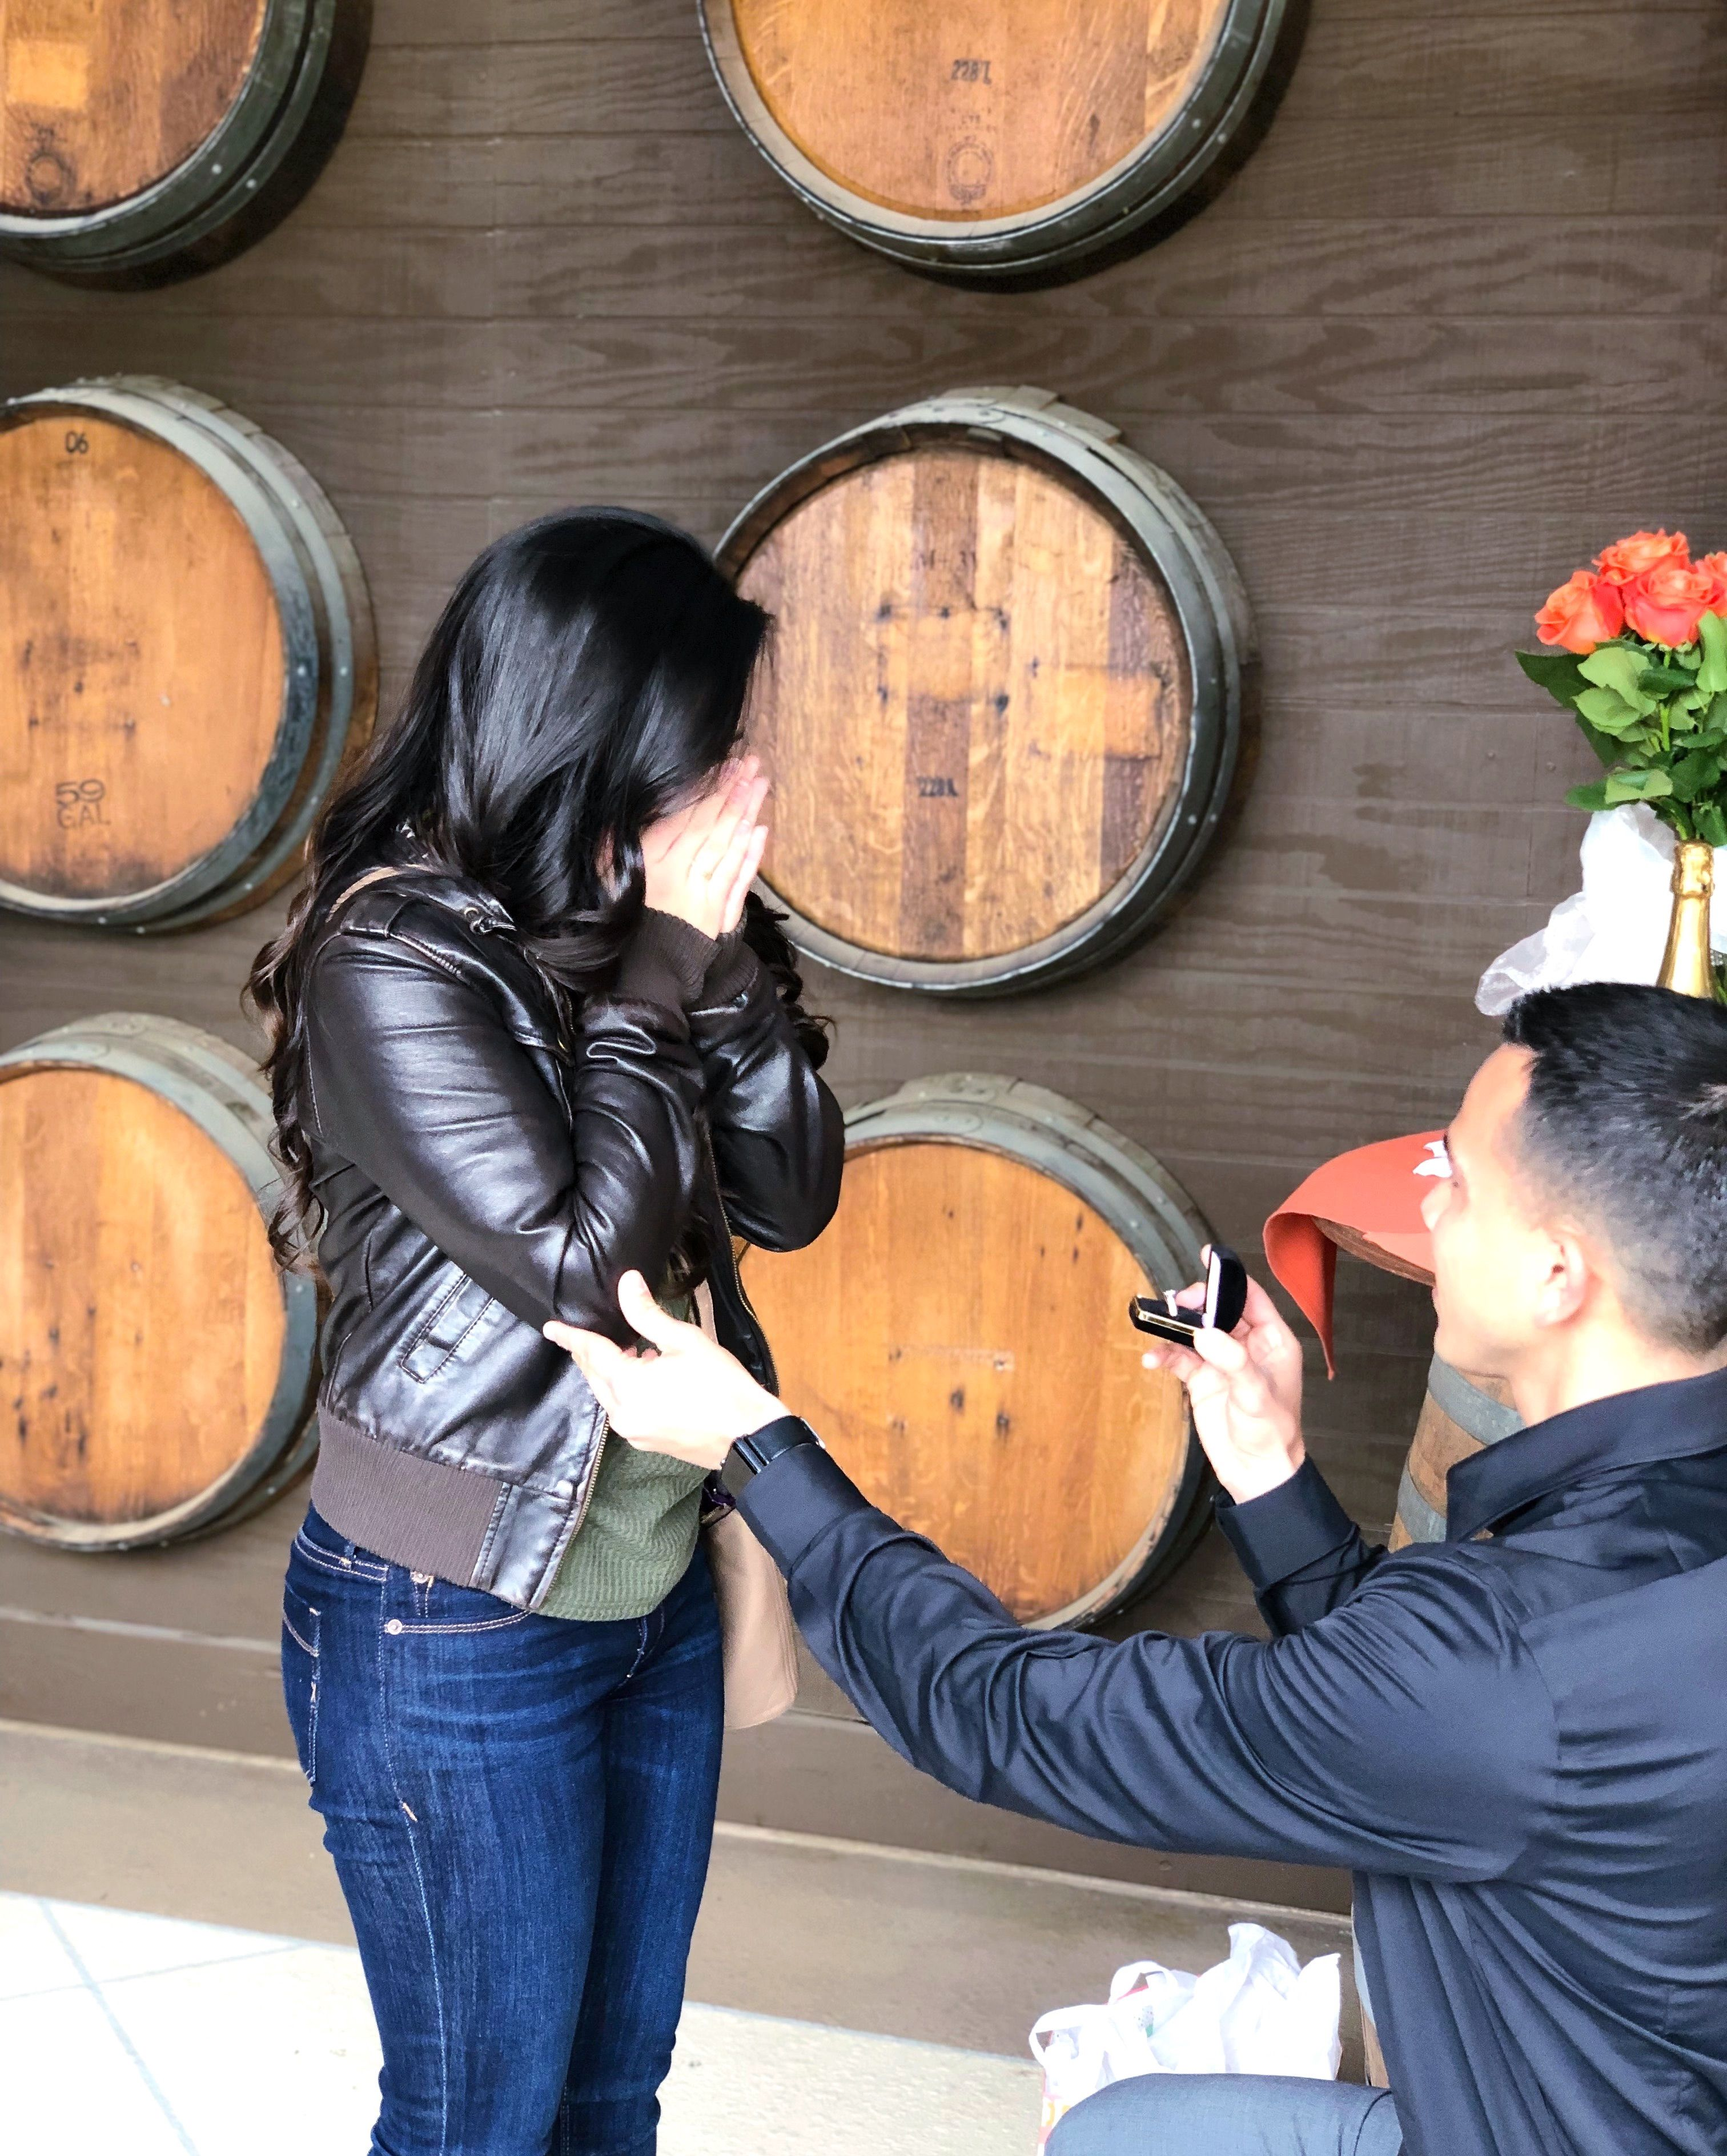 She Said Yes!nCongratulations William And Natalie!nCall